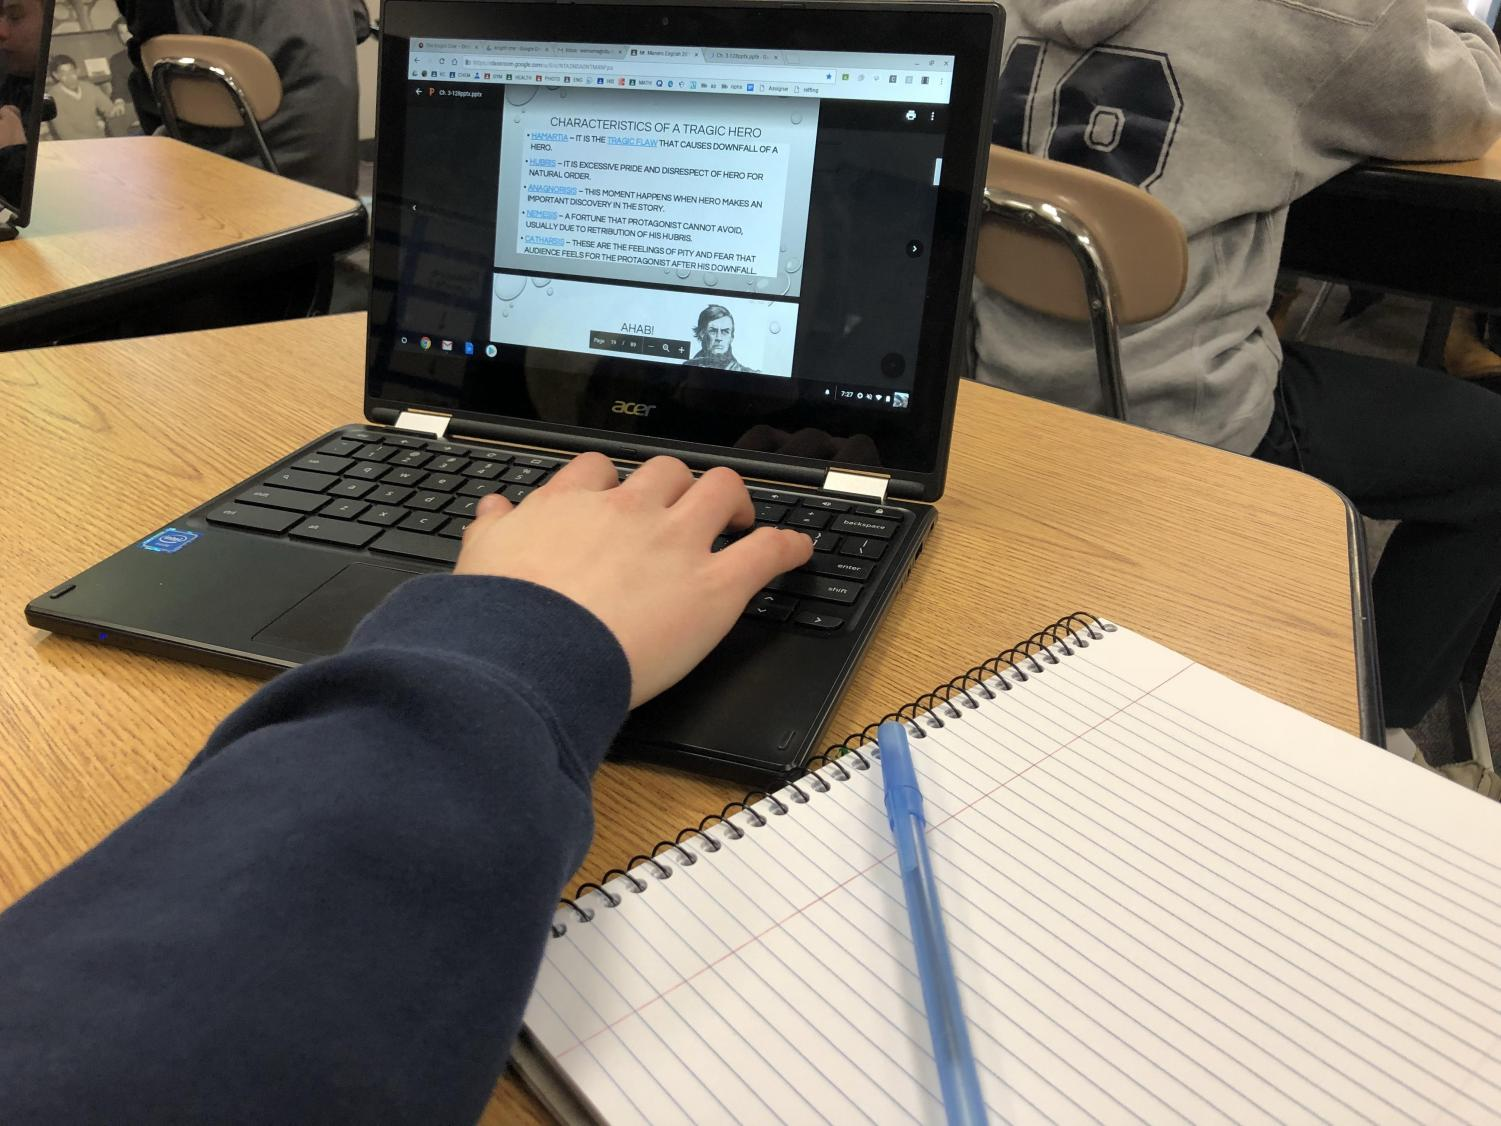 Chrome v. Pen: A North Penn High School student scrolls through an English class power point on Moby-Dick. With an increase in technology in the classroom comes a decrease in hand written note taking. Whether that change is for better or worse is up for debate among educators.